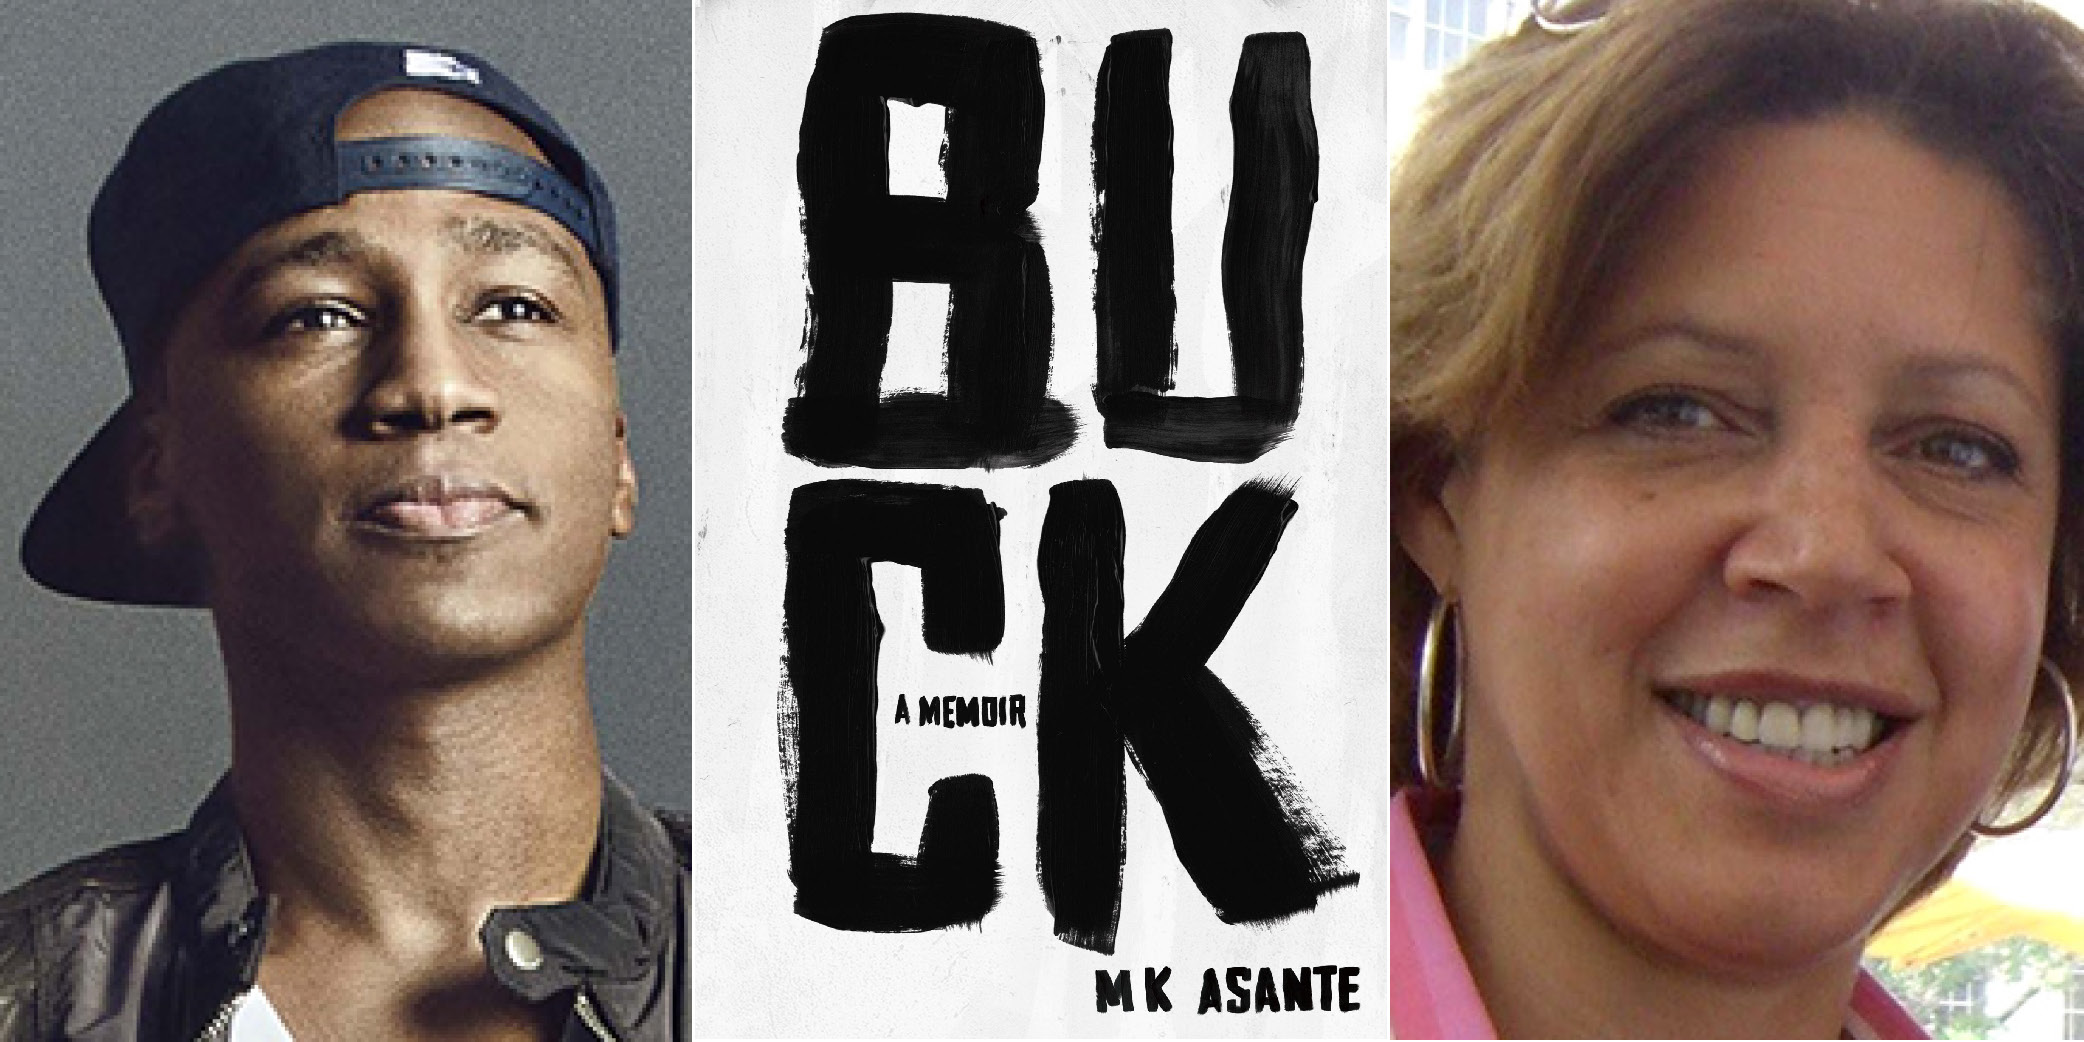 MK Asante (left), BUCK book jacket (center), Lisa Page (right)